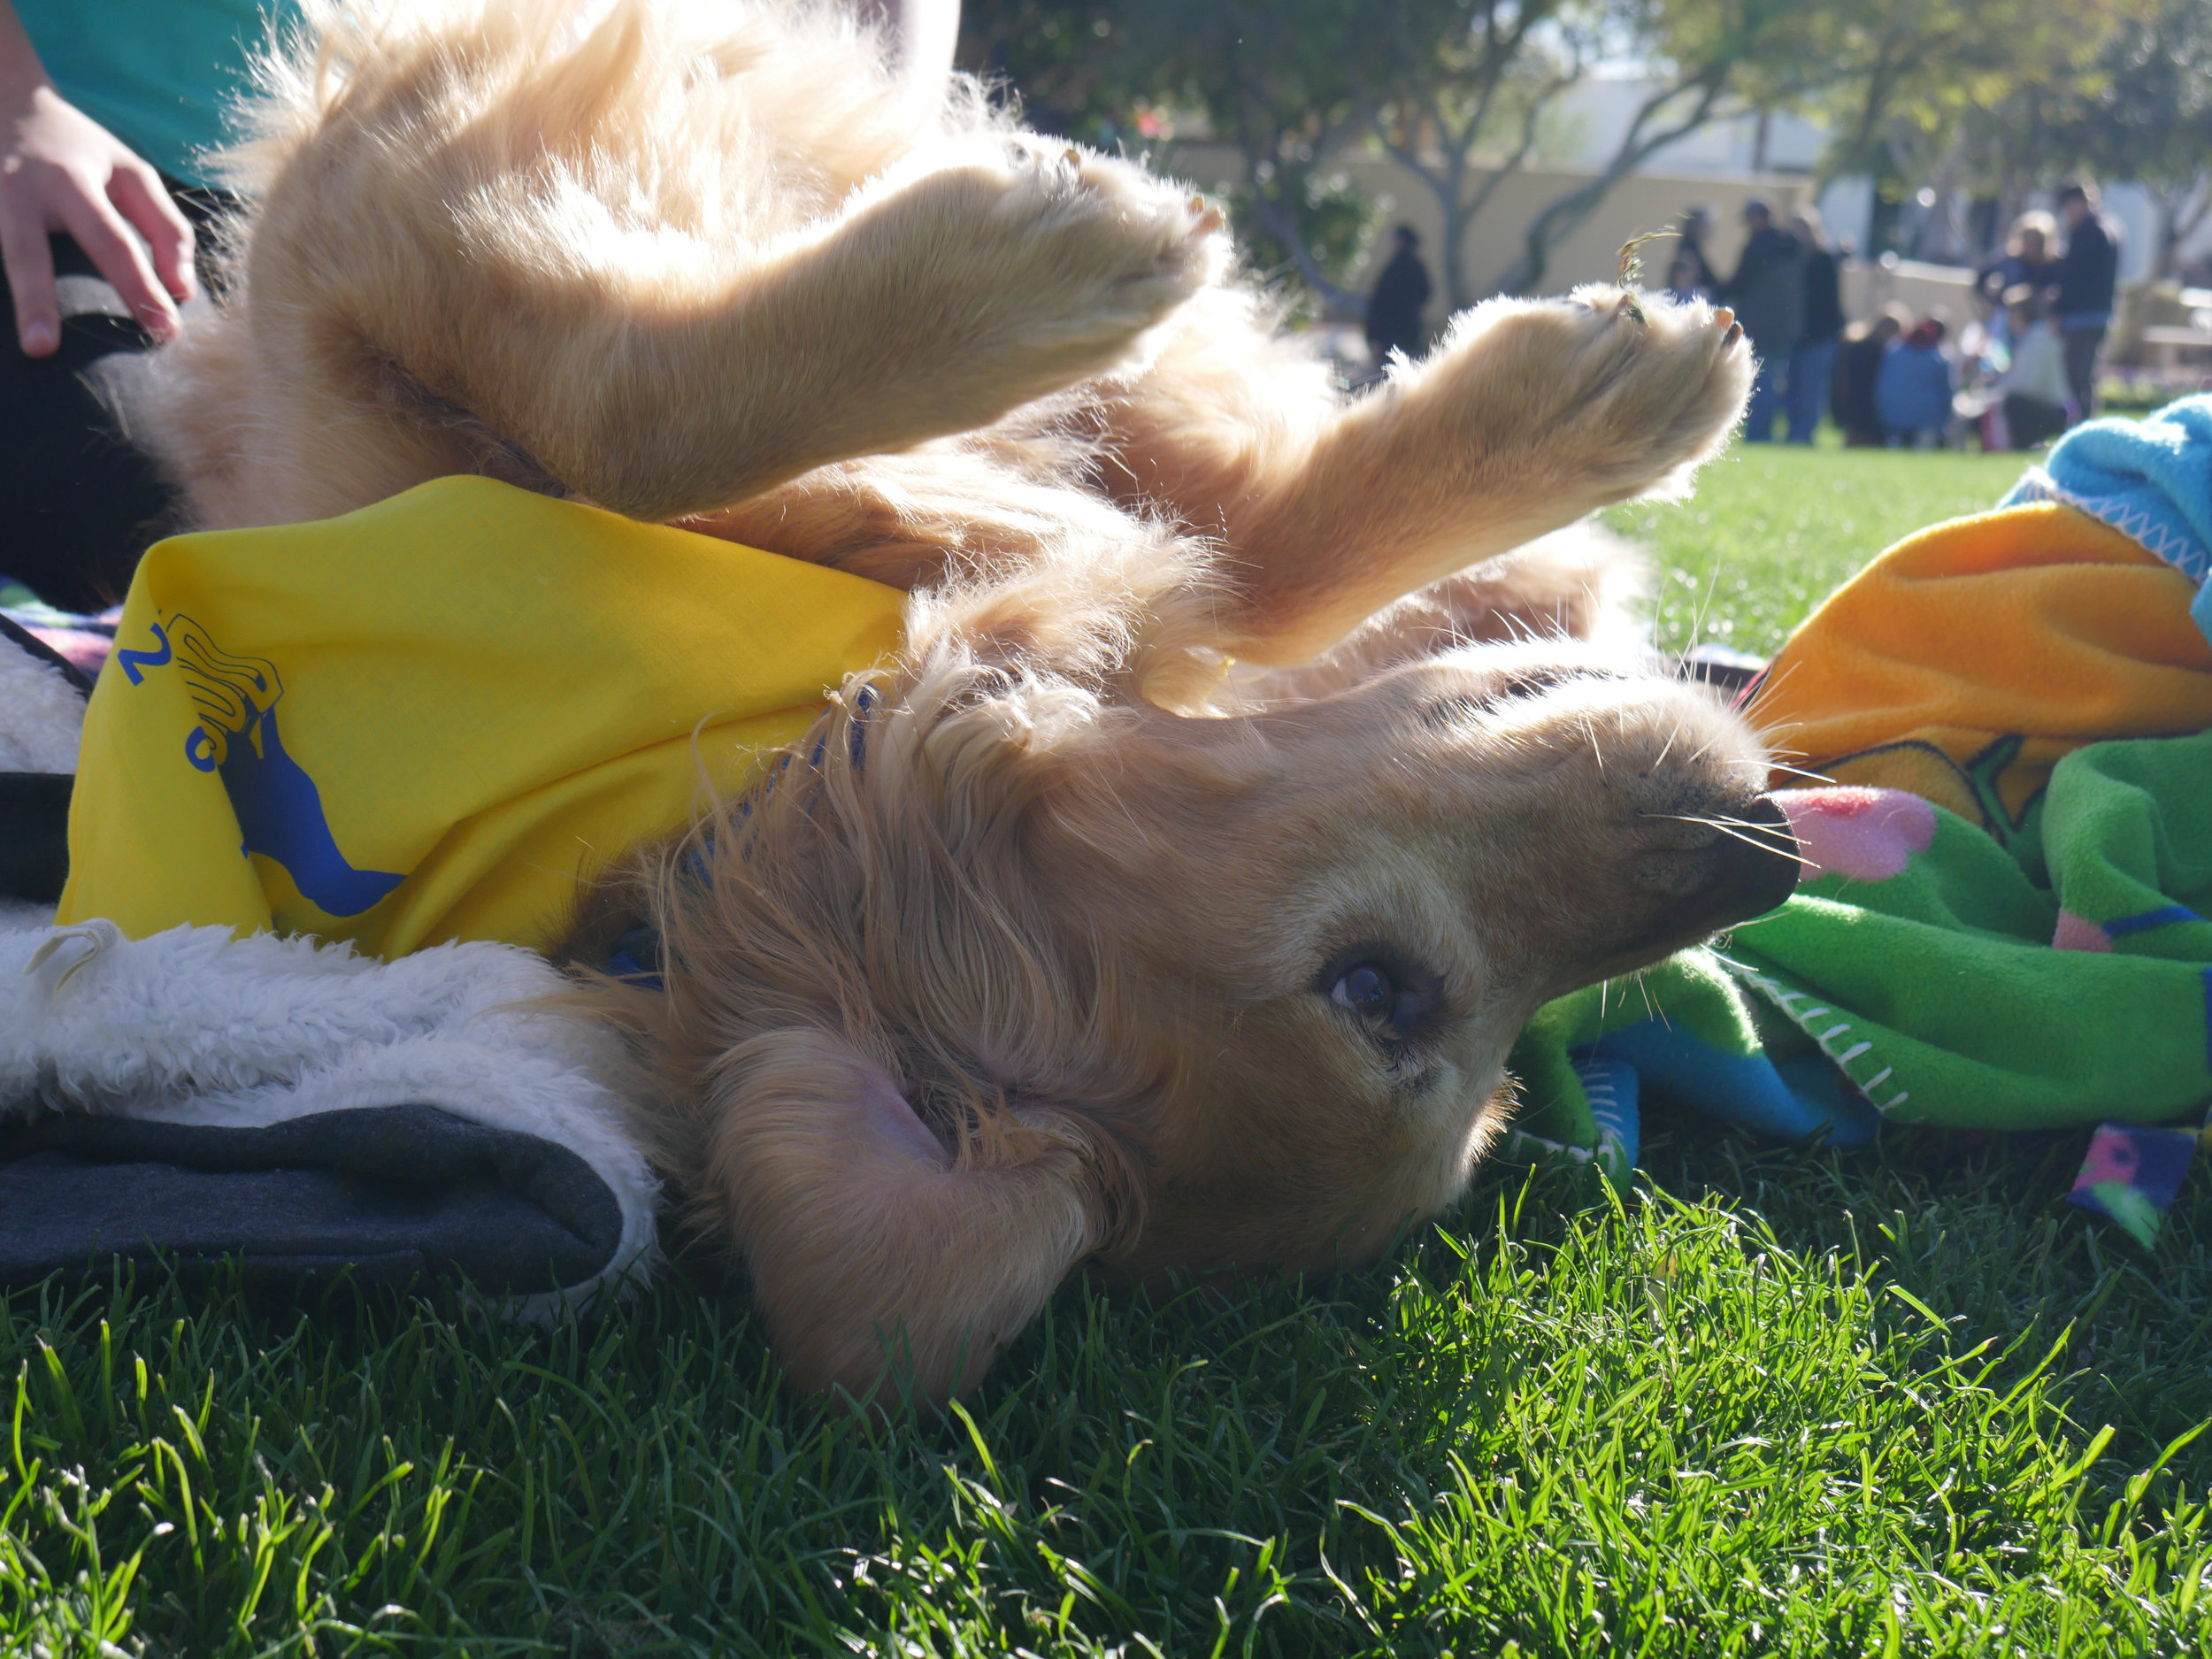 Pioneer, a Golden Retriever, soaks up the sun at the DogFest Walk 'n Roll in Scottsdale, Ariz. on Feb. 24, 2018.  (Nick Serpa/azcentral)